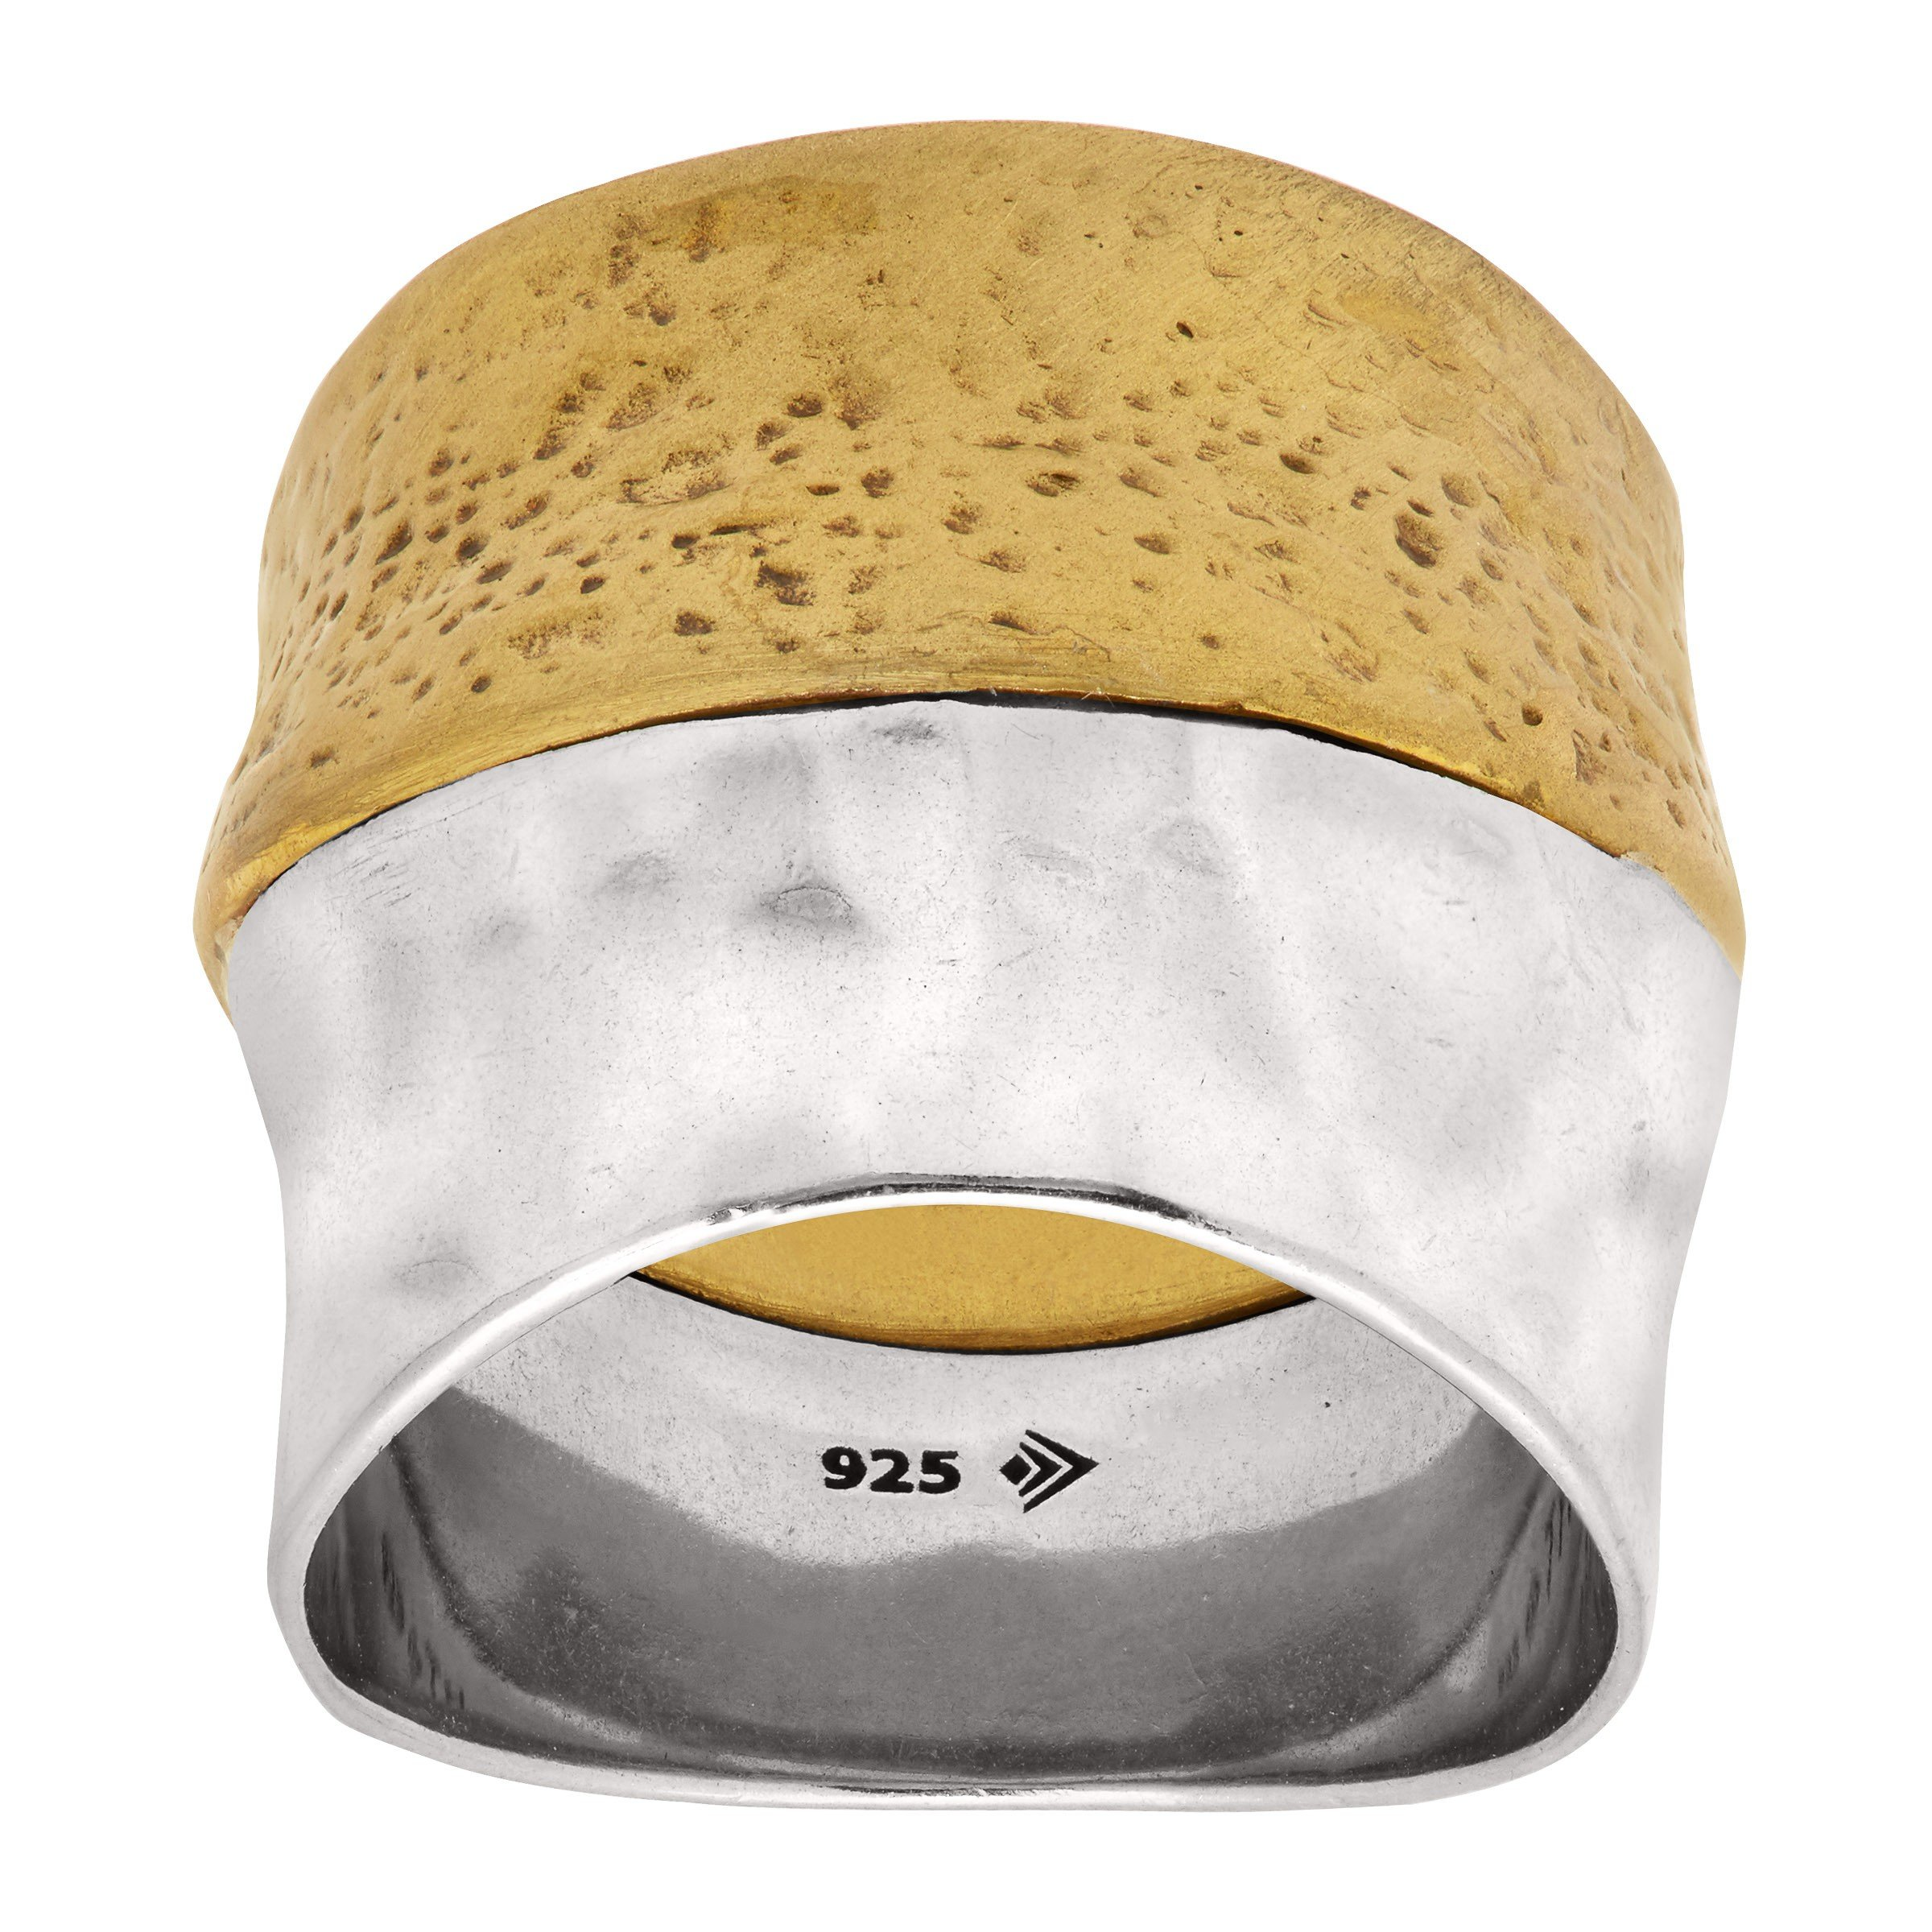 Silpada 'Rain or Shine' Sterling Silver and Brass Ring, Size 8